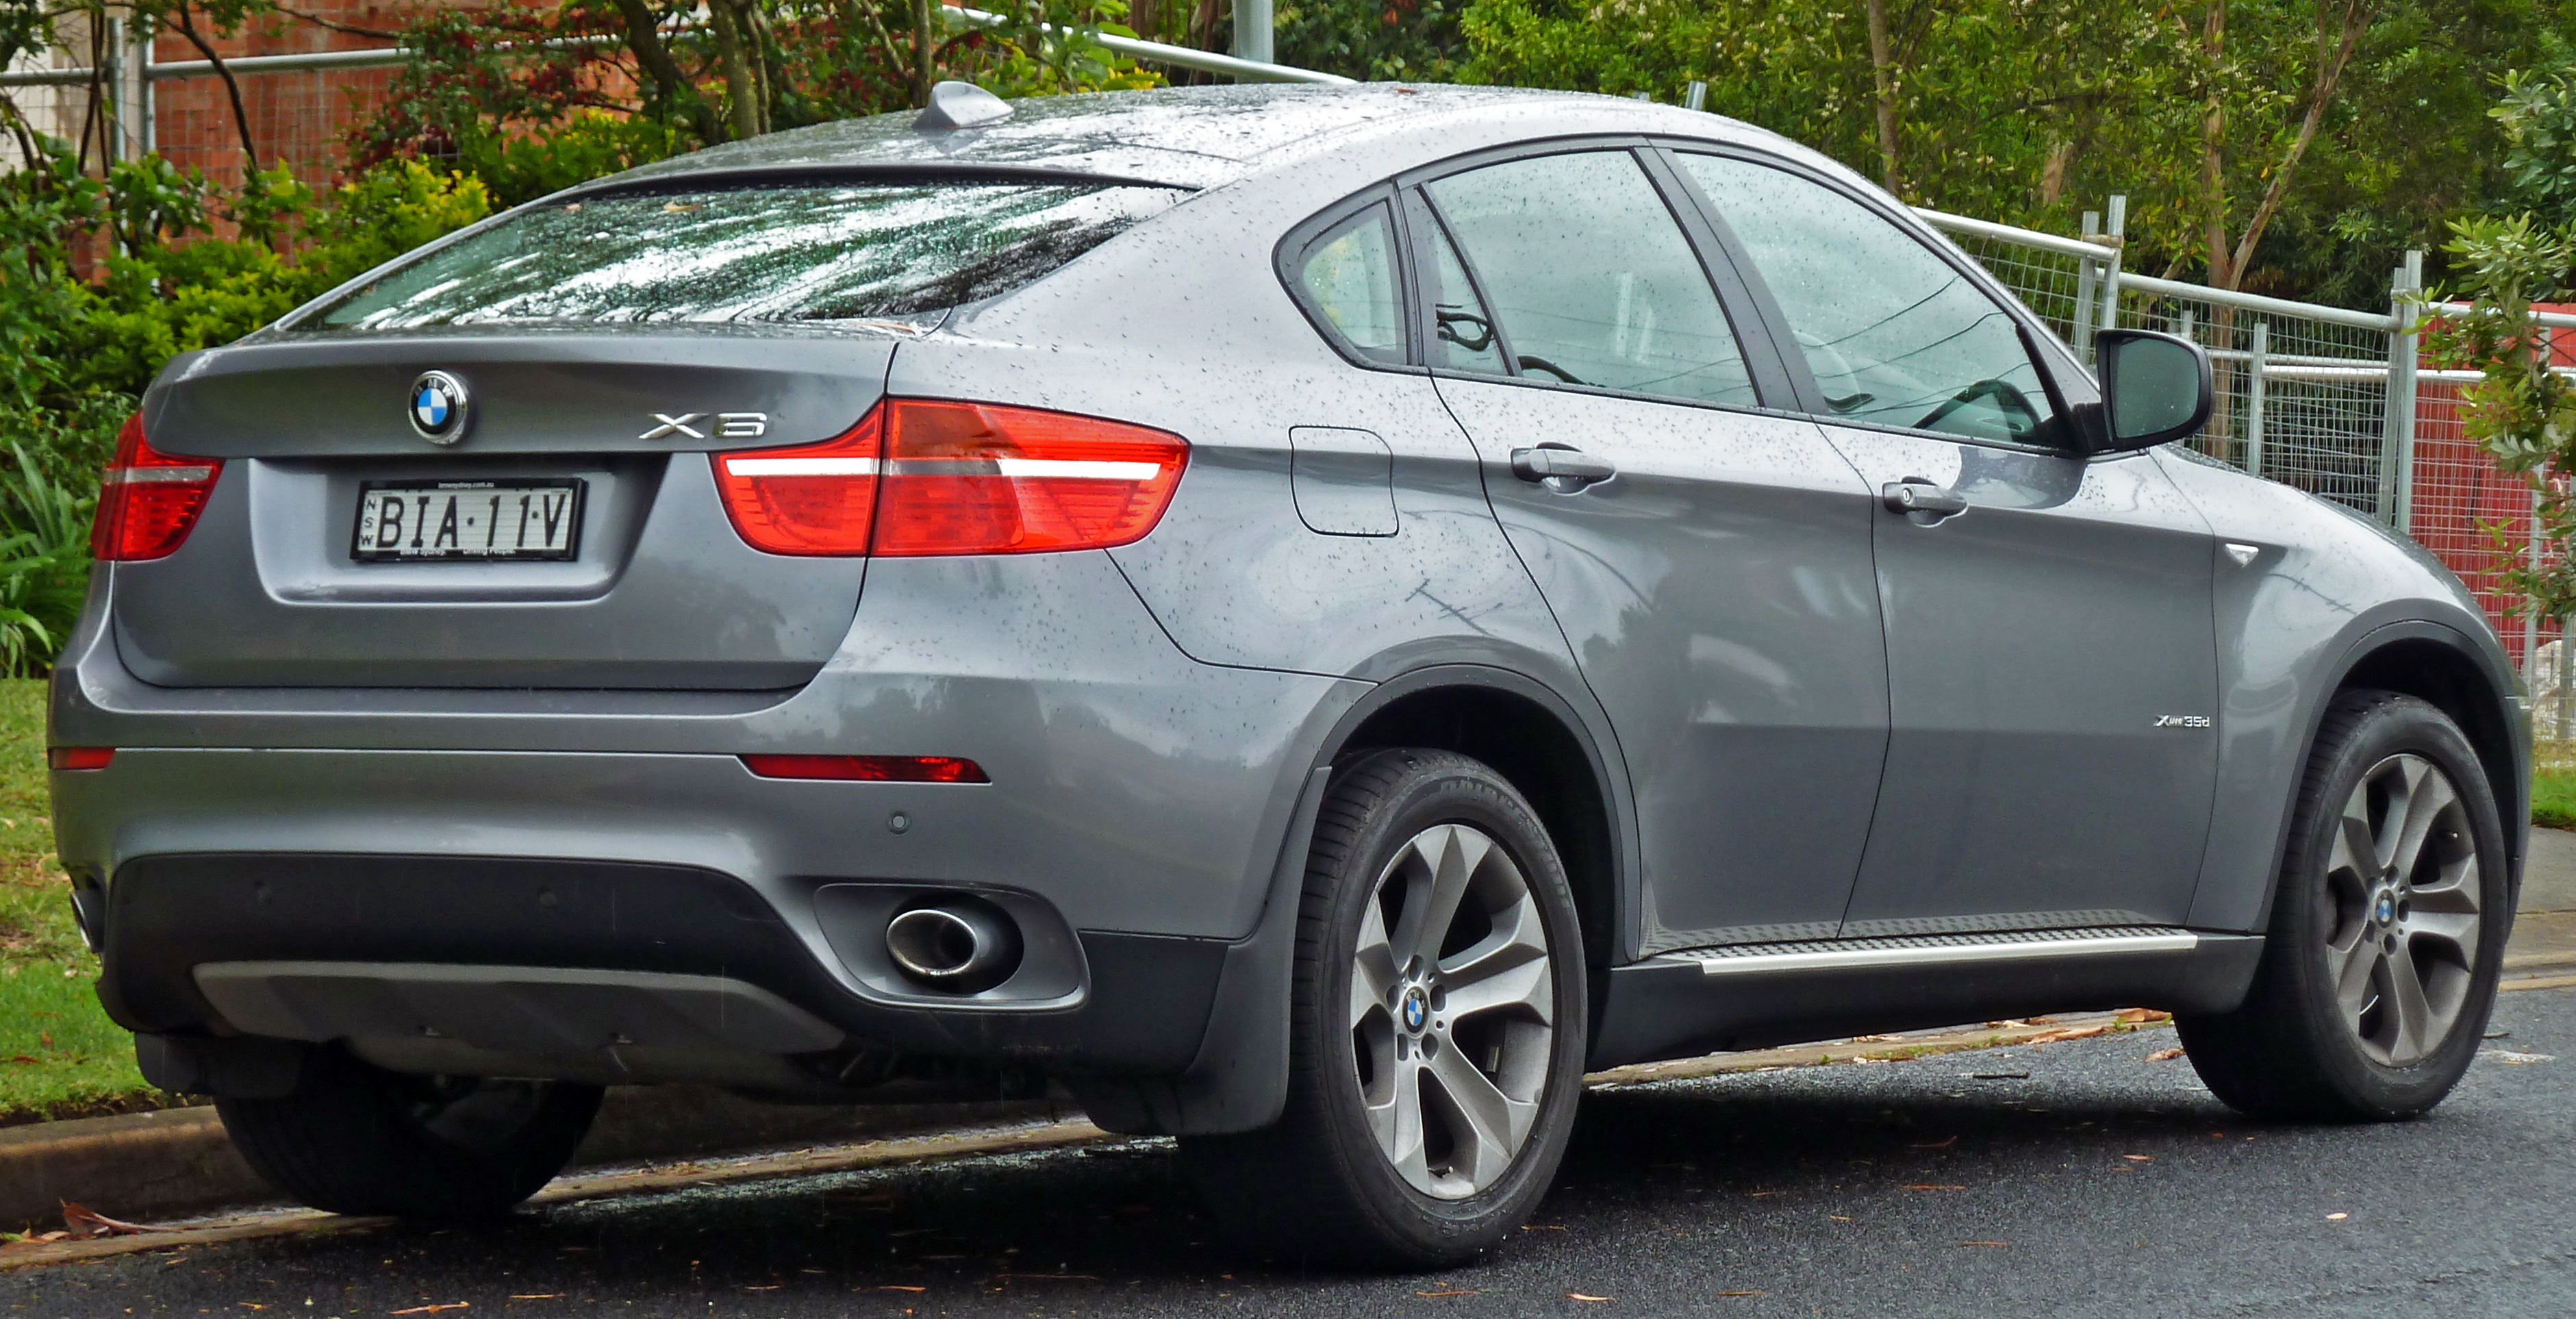 2008 Bmw X6 Xdrive50i Photo Gallery Of Long Term Road